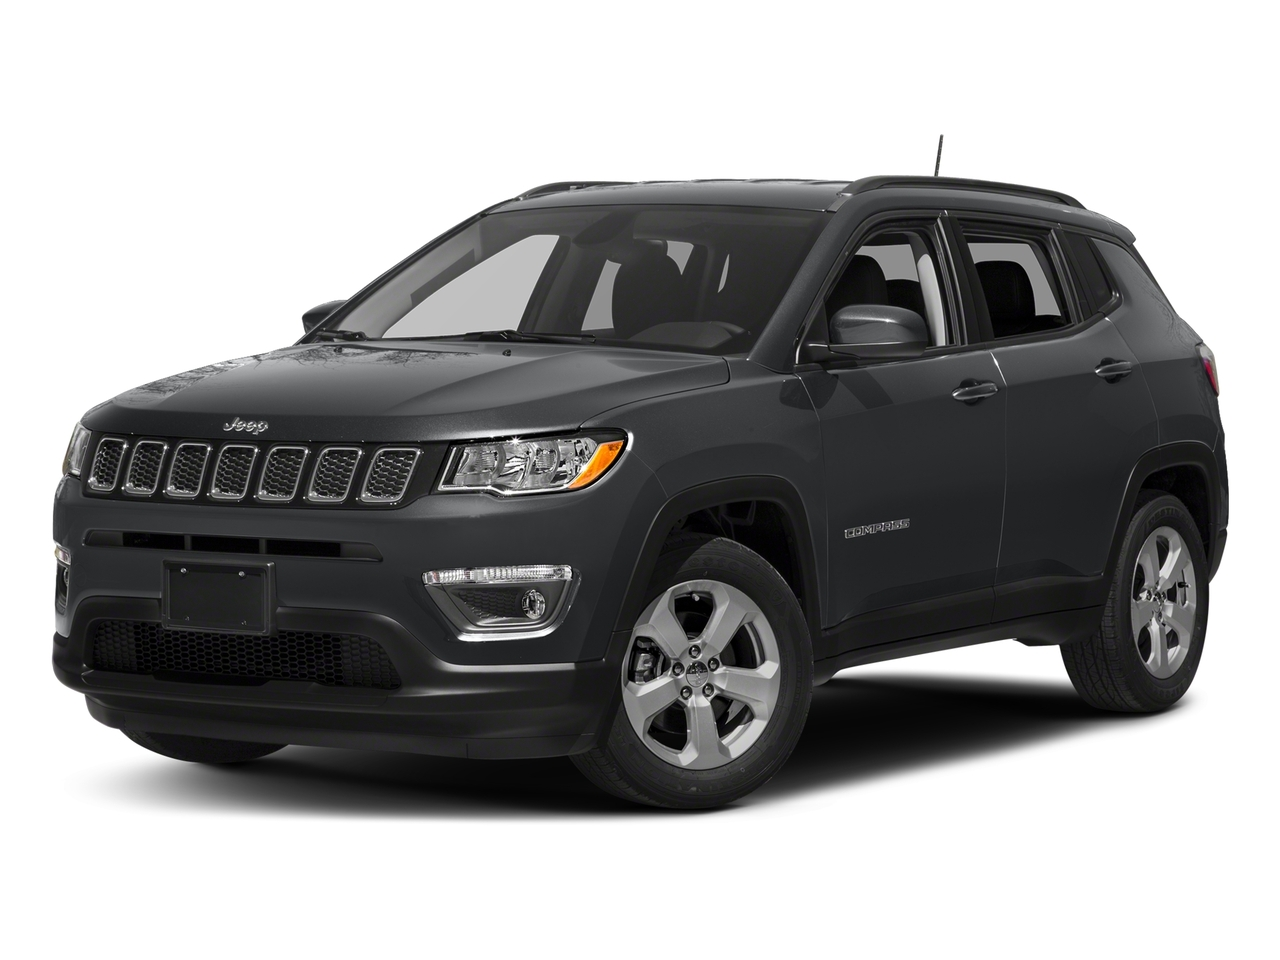 granite crystal metallic clearcoat 2017 Jeep New Compass LIMITED SUV Emmaus PA